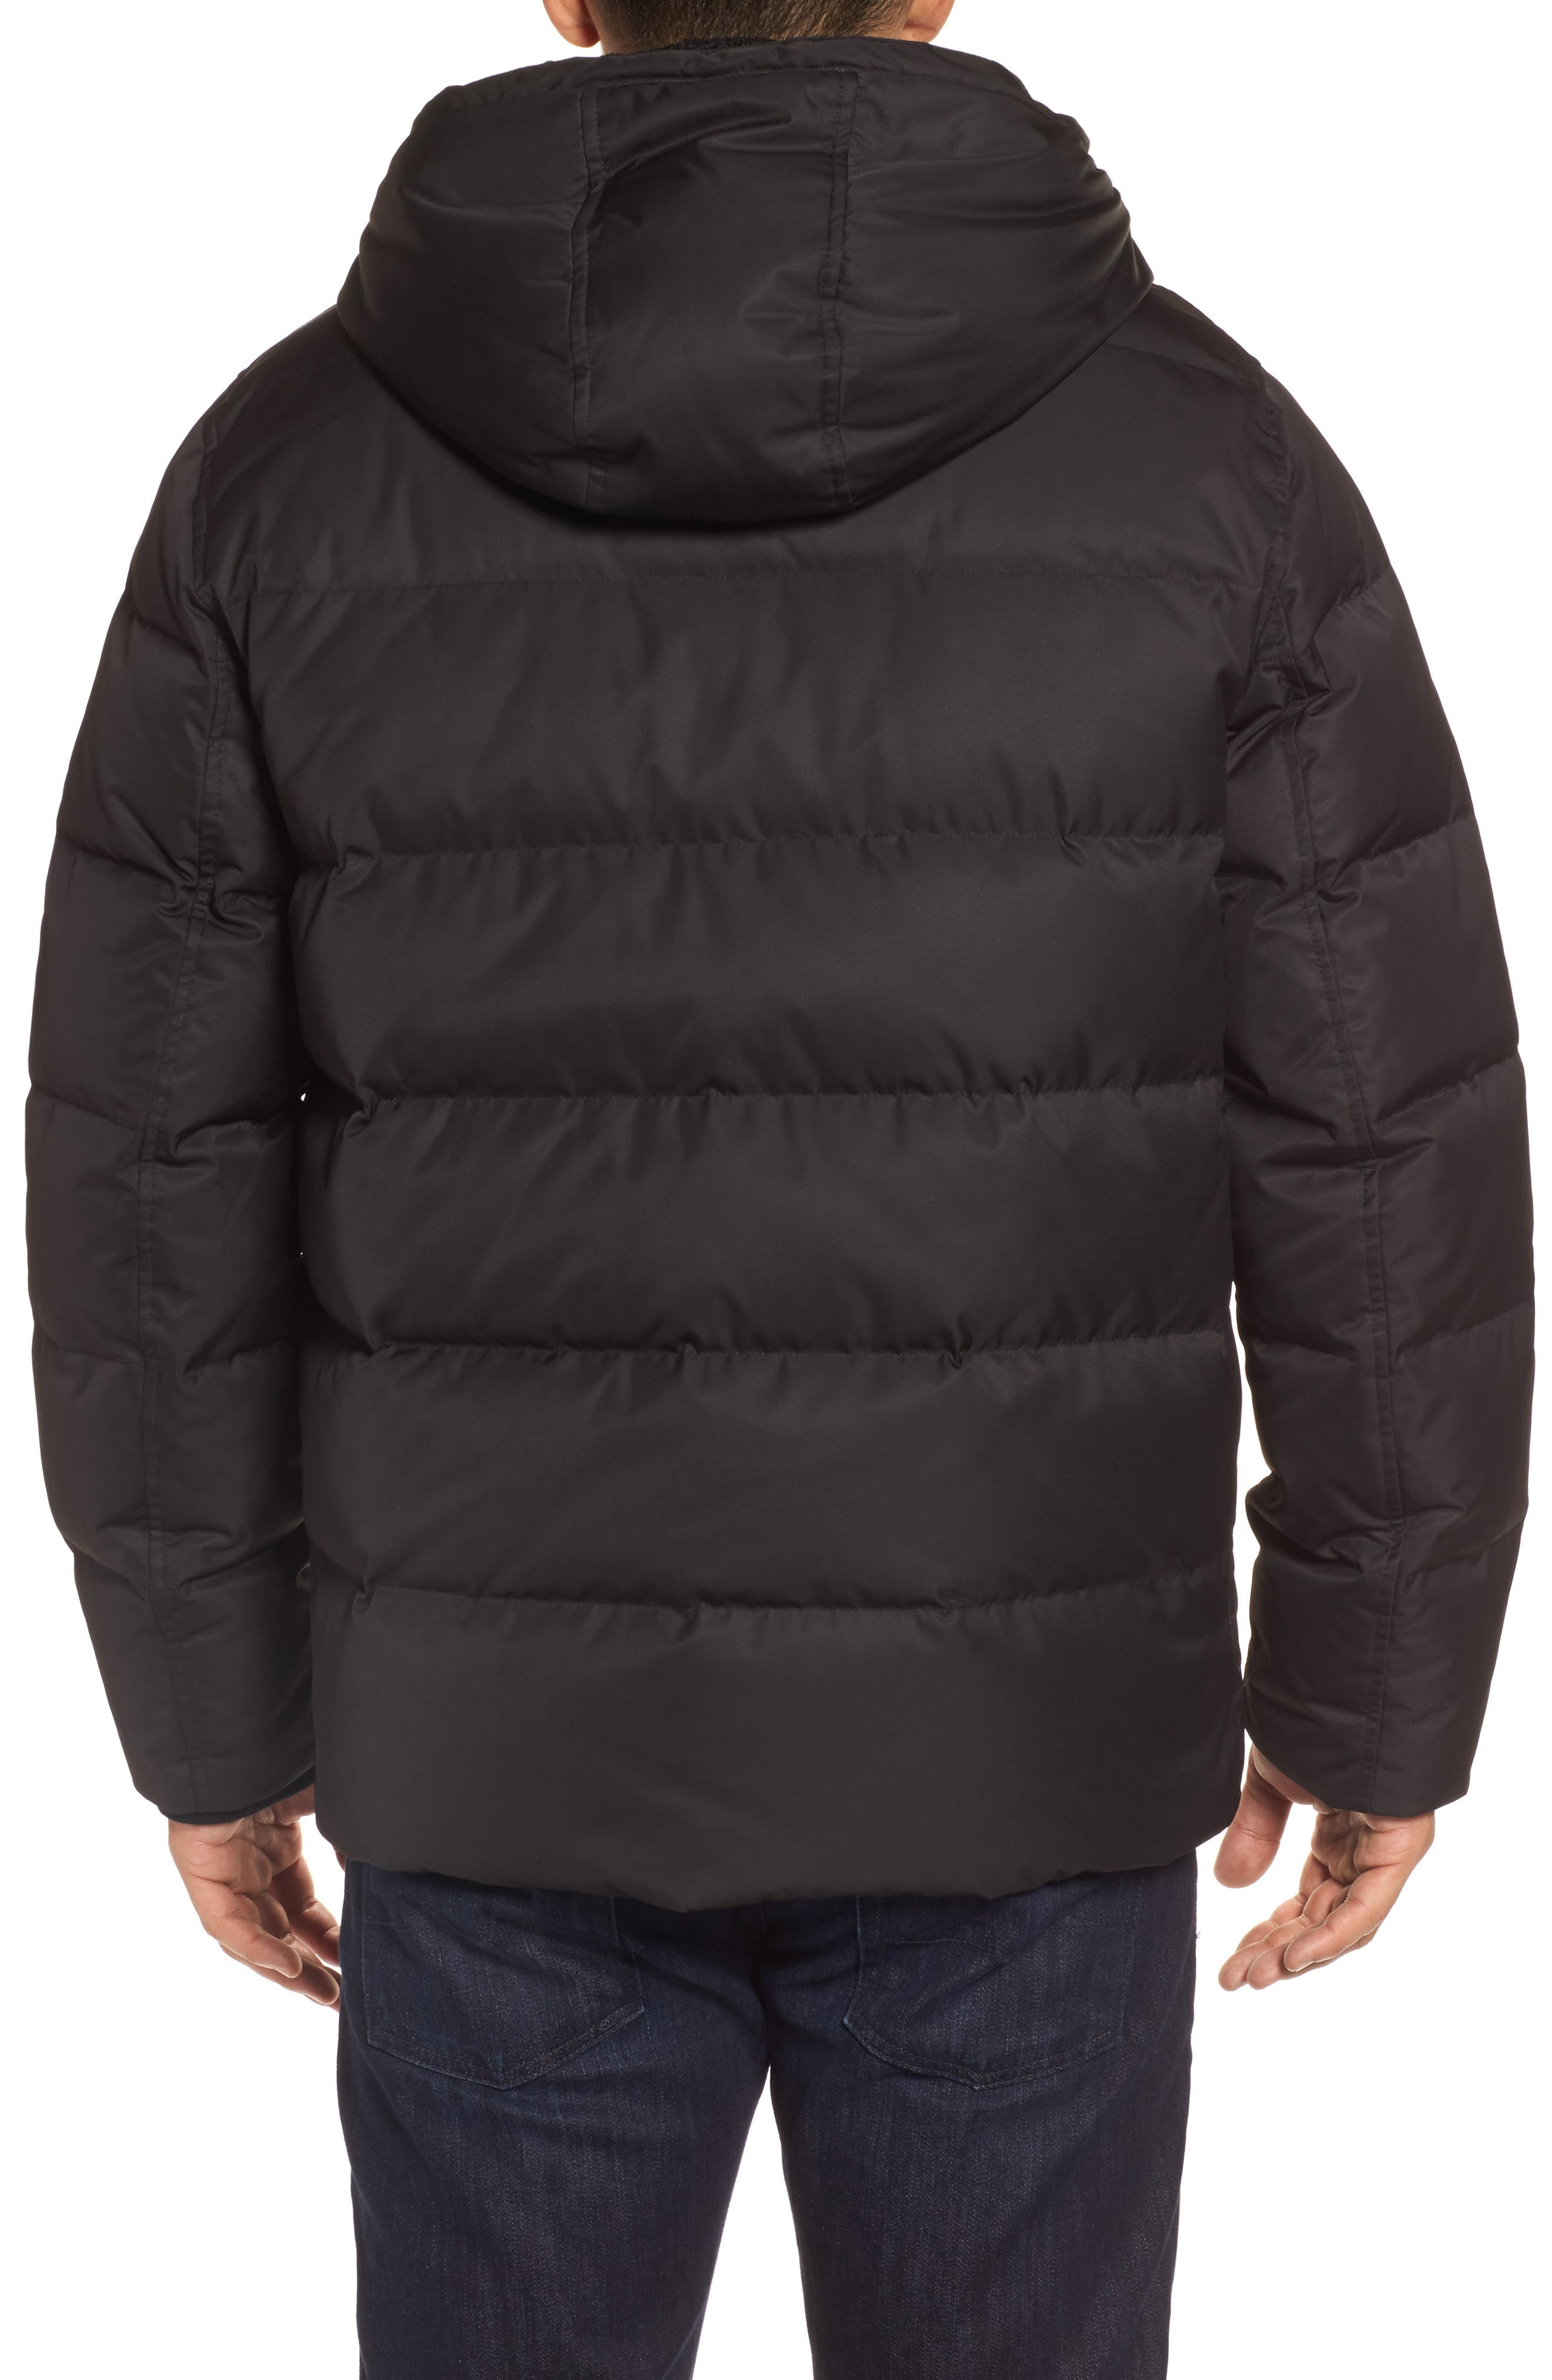 Groton Slim Down Jacket with Faux Shearling Lining,                             Alternate thumbnail 2, color,                             Black